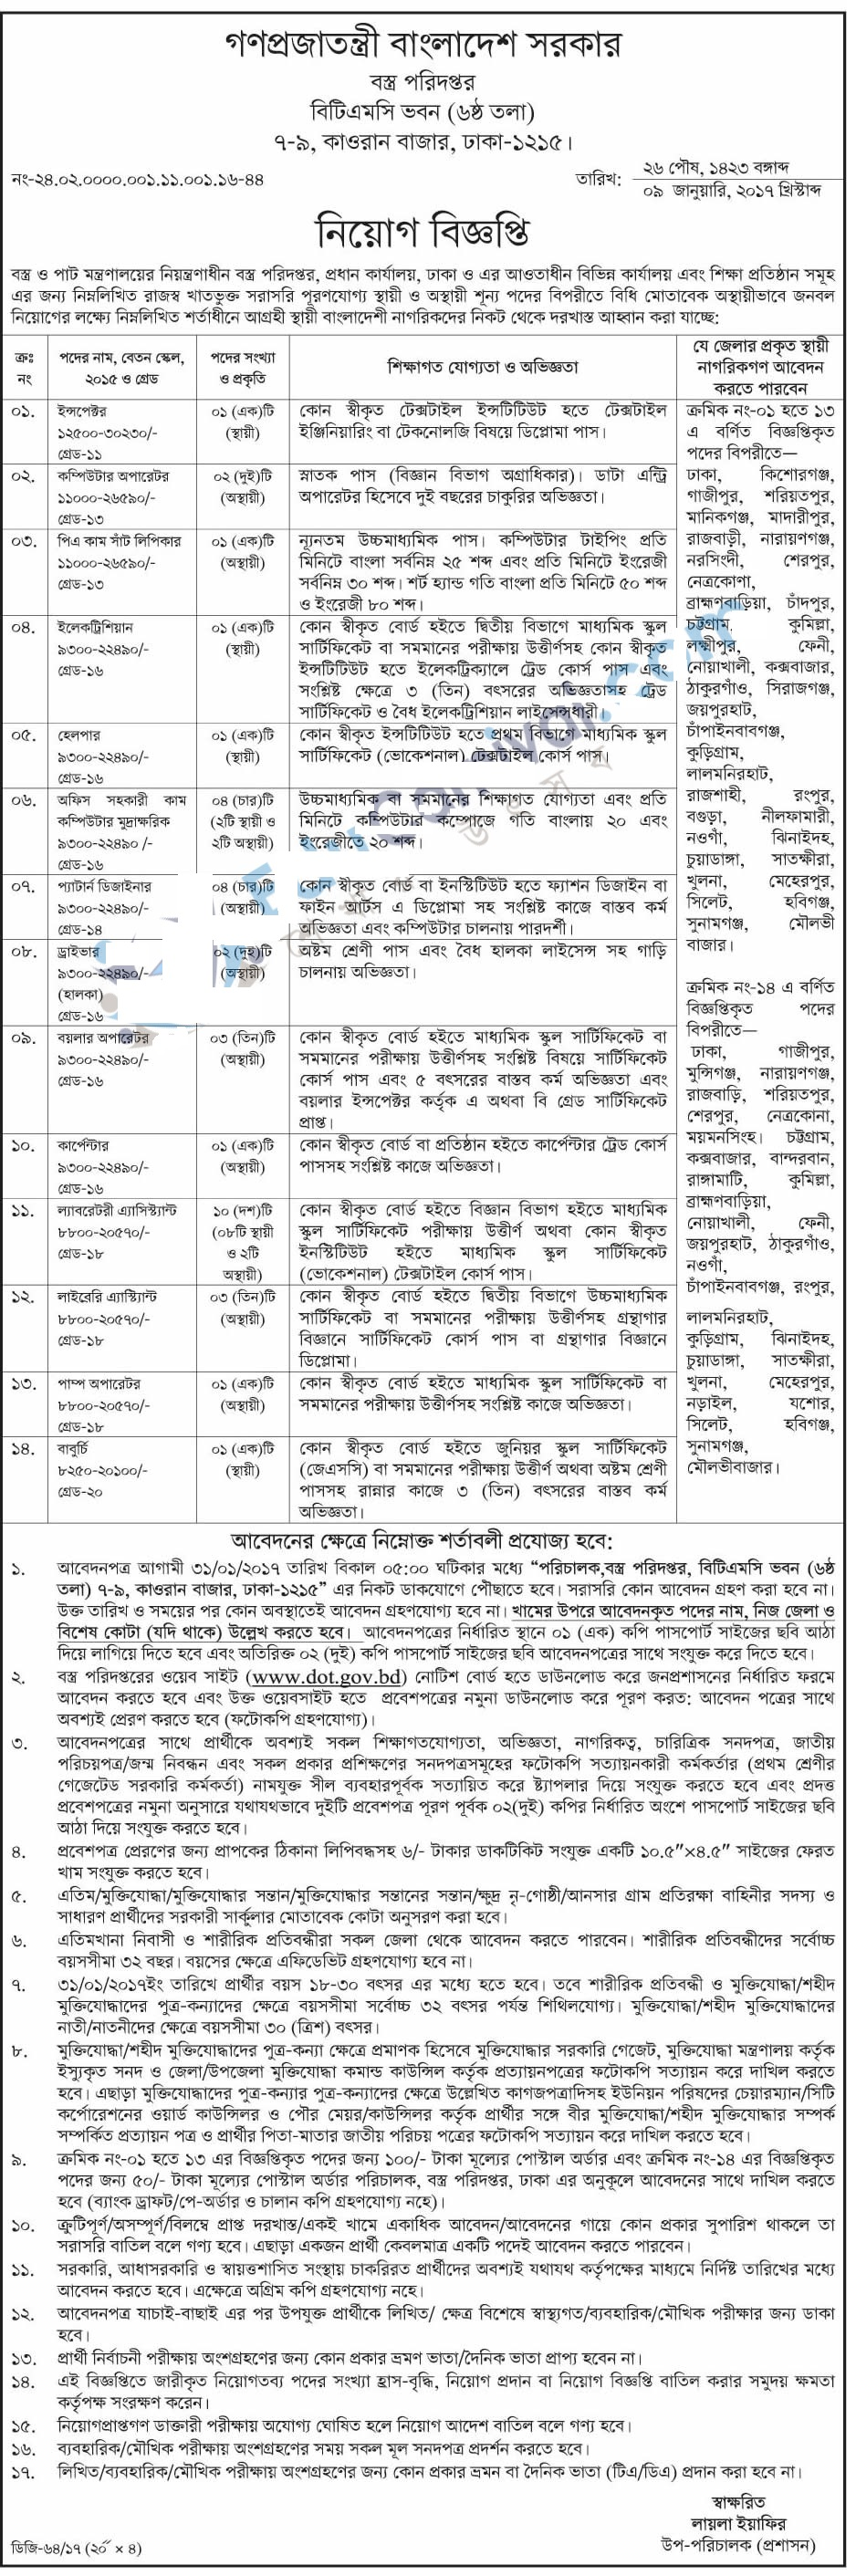 Department of Textiles, Ministry of Textiles and Jute Job Circular On January 2017